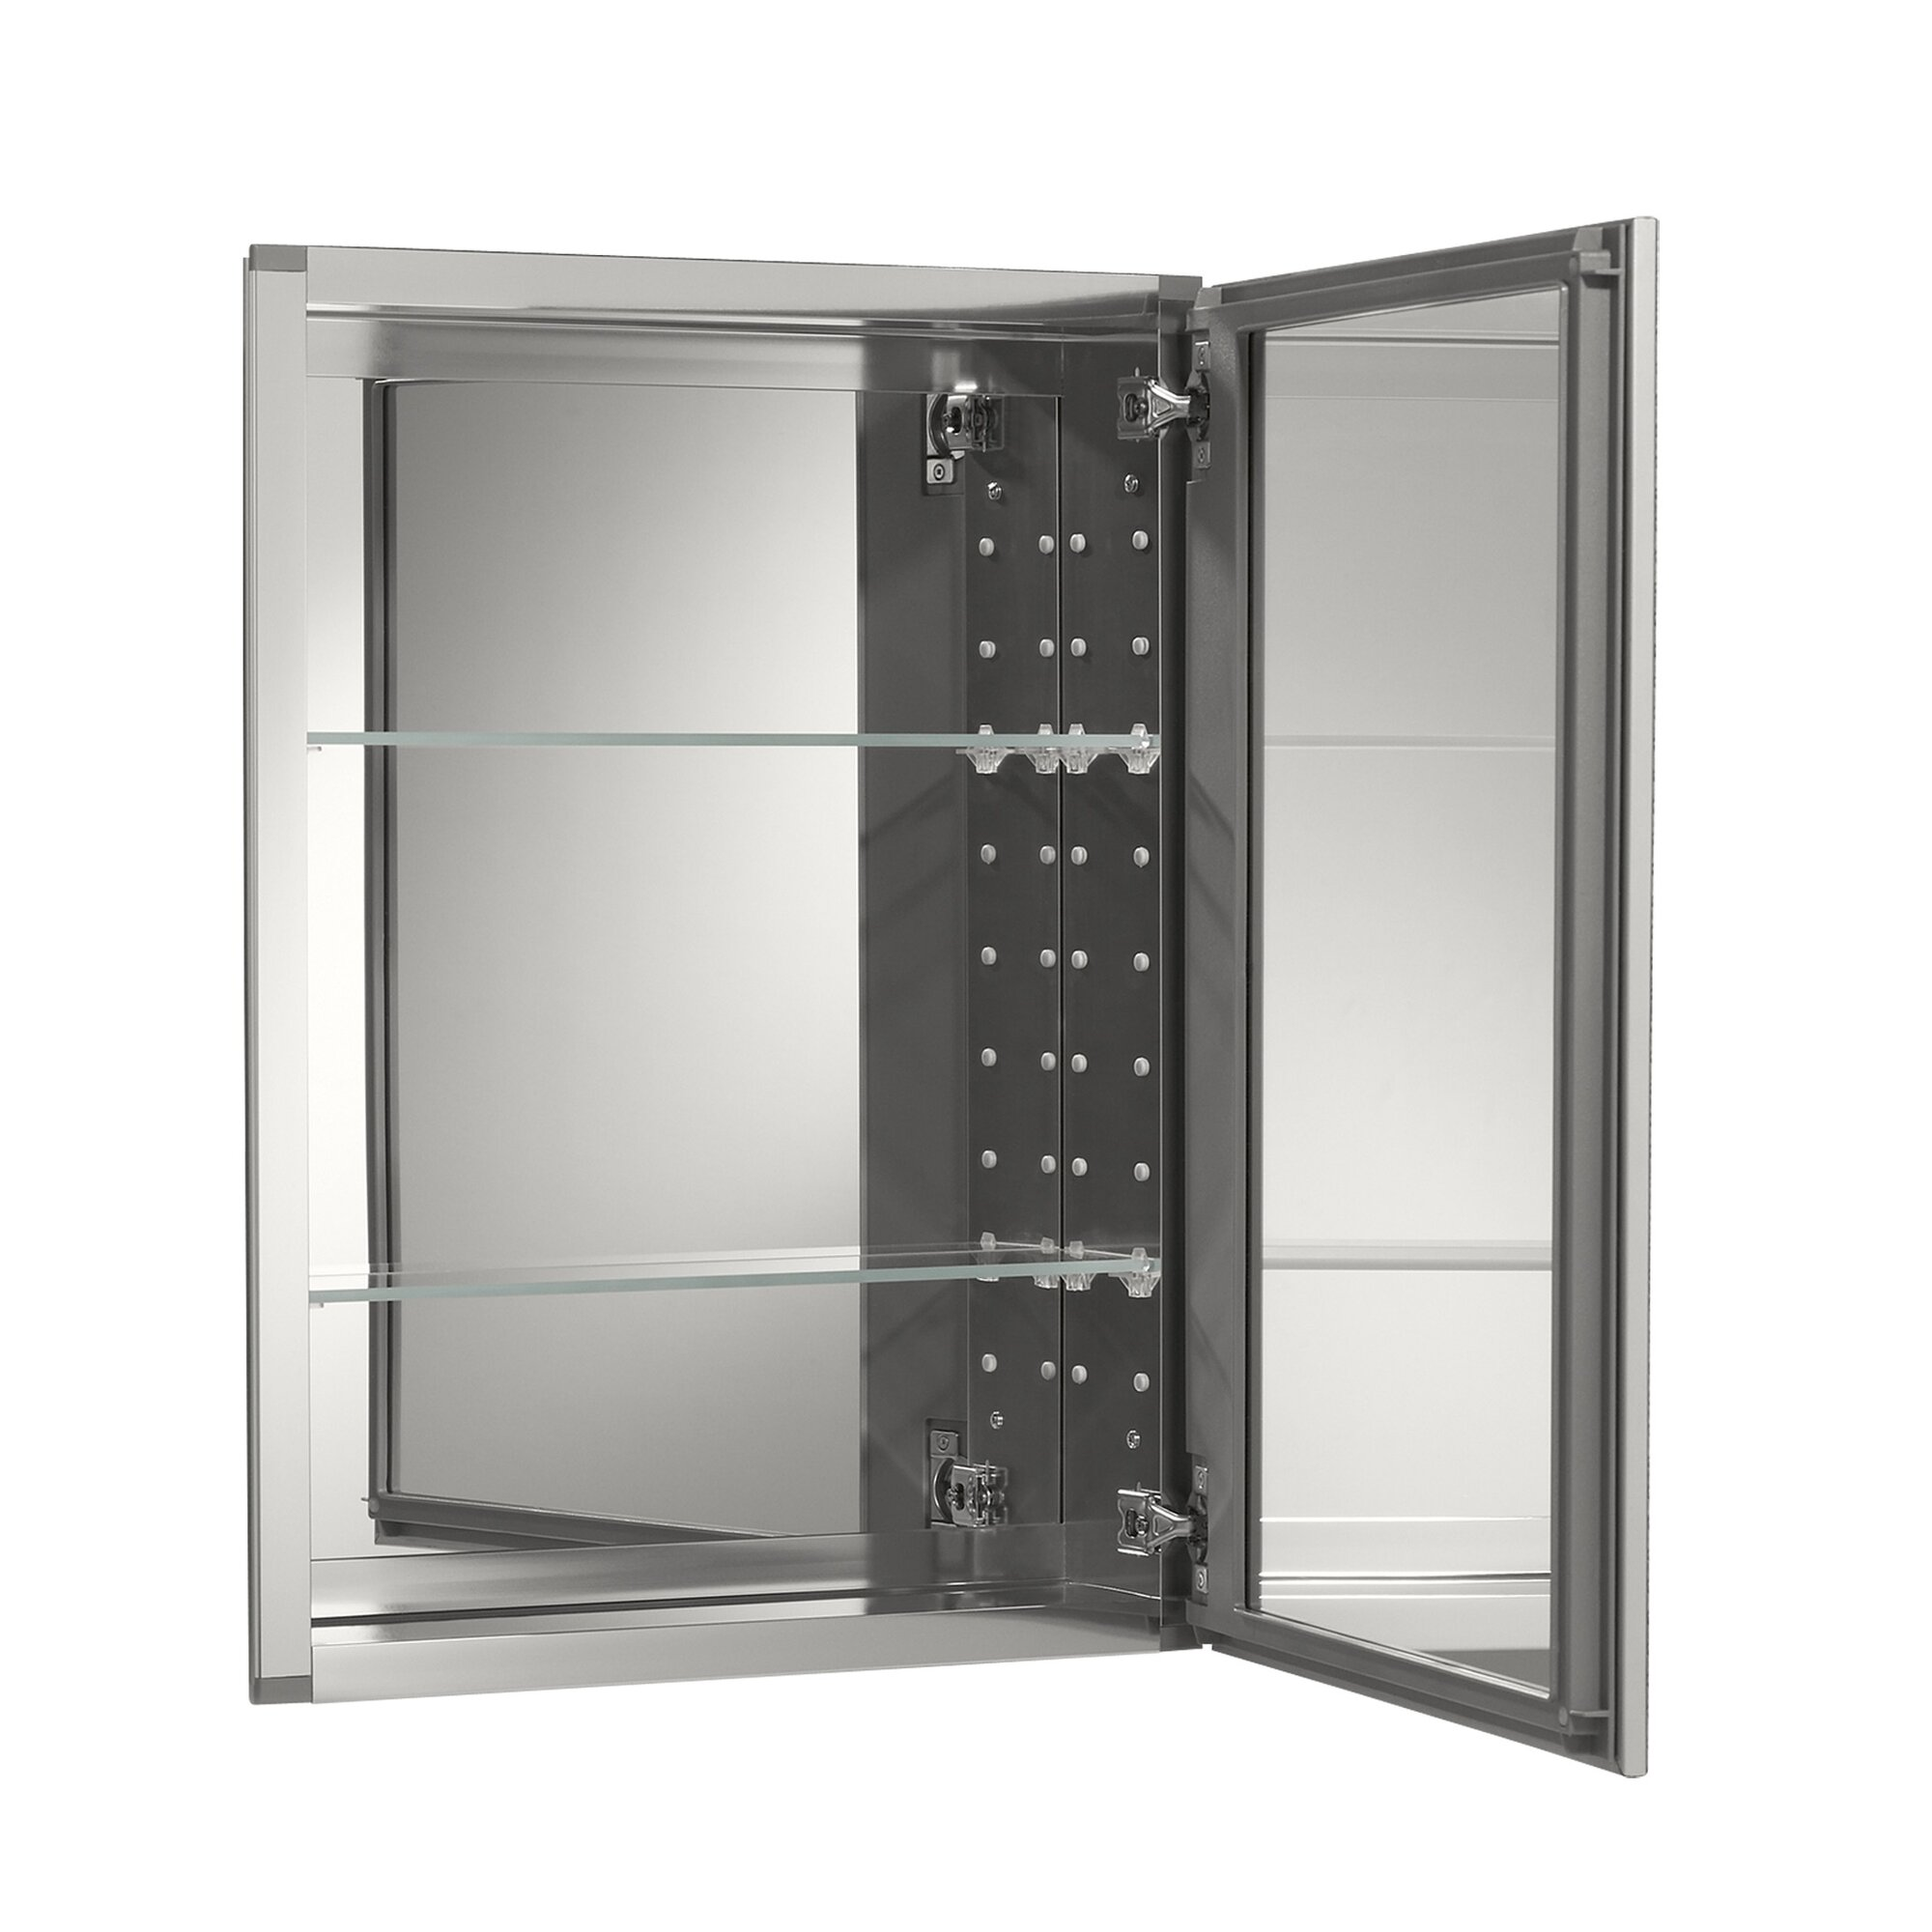 20 X 26 Aluminum Mirrored Medicine Cabinet Reviews Allmodern